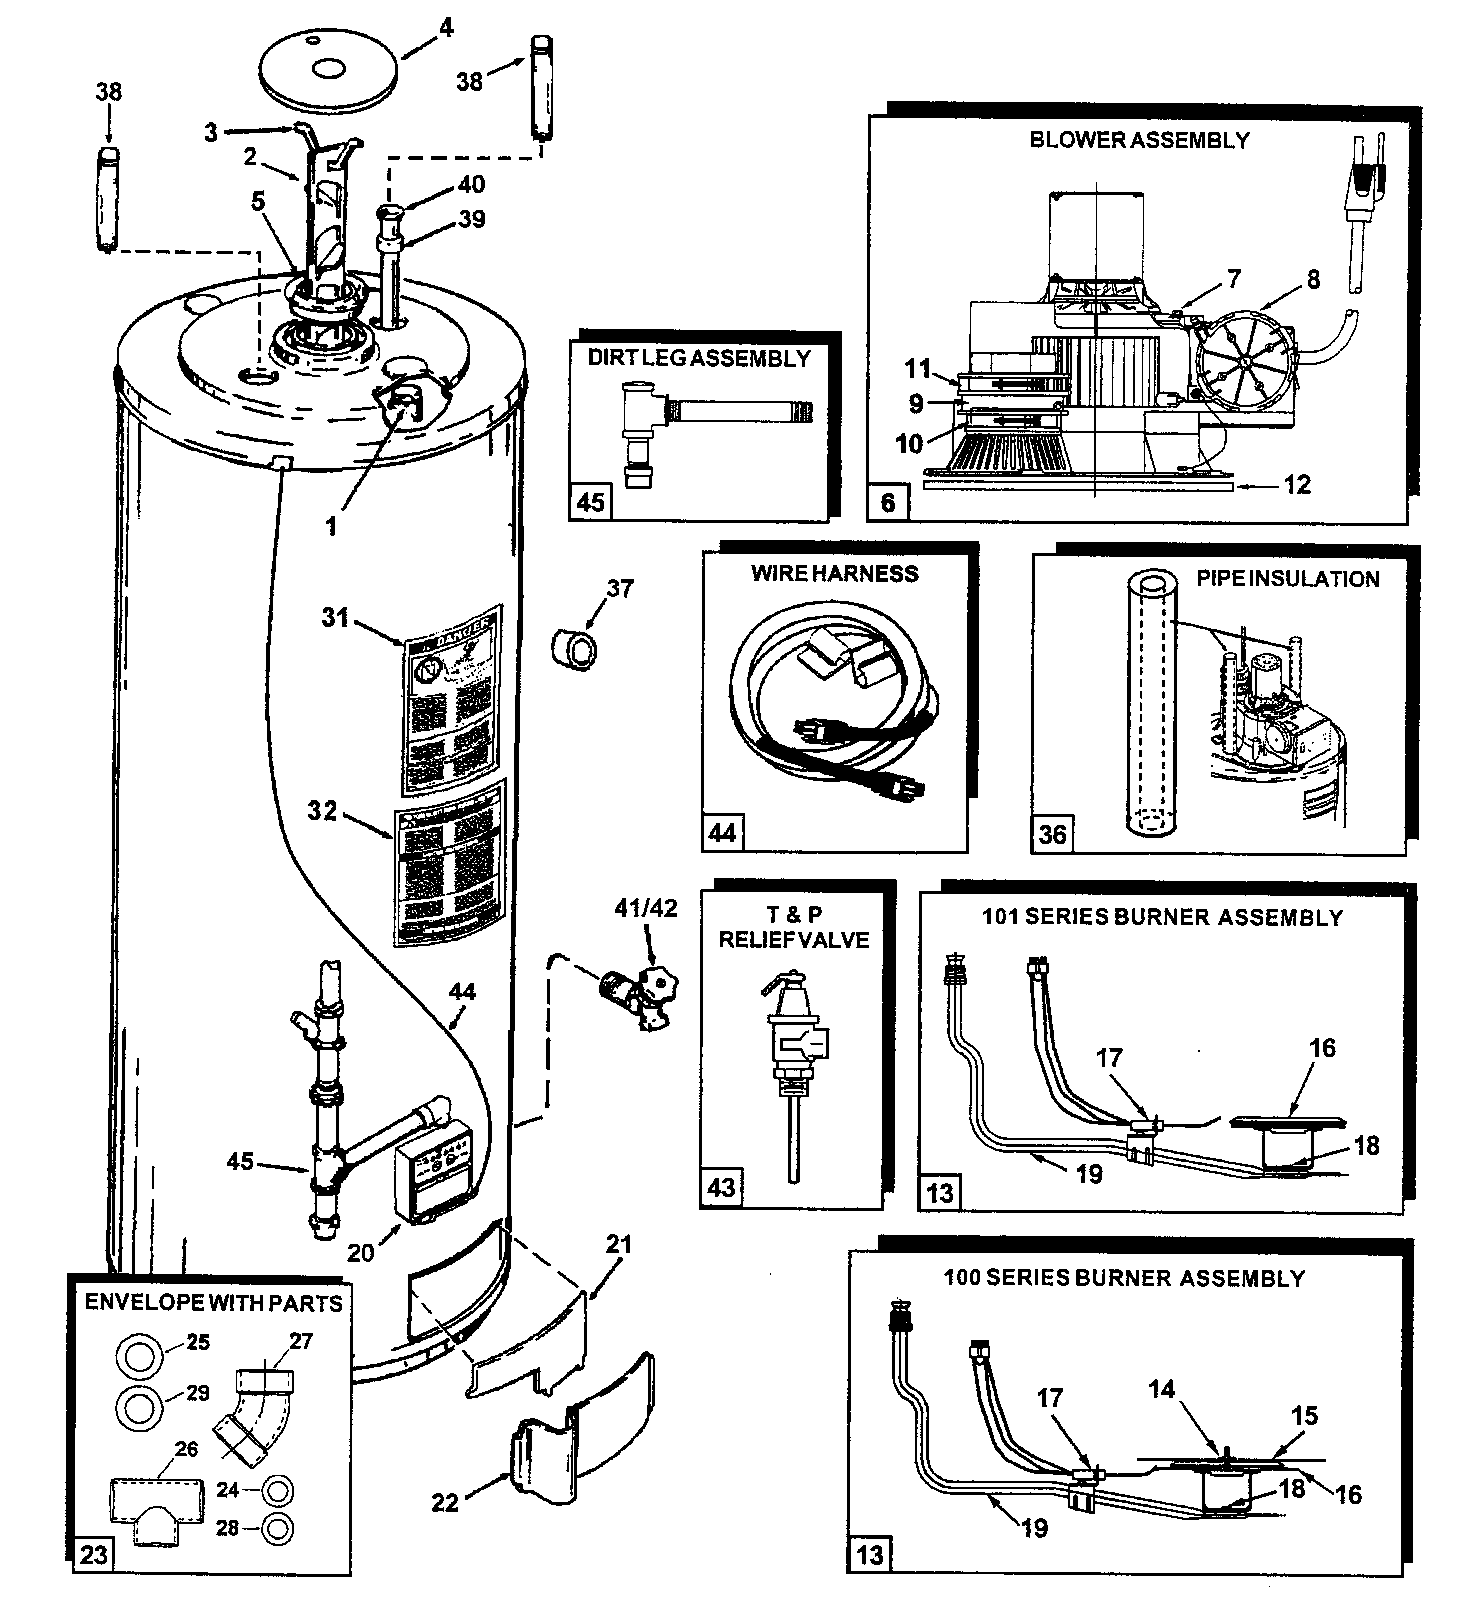 WATER HEATER Diagram & Parts List for Model GPSH50100